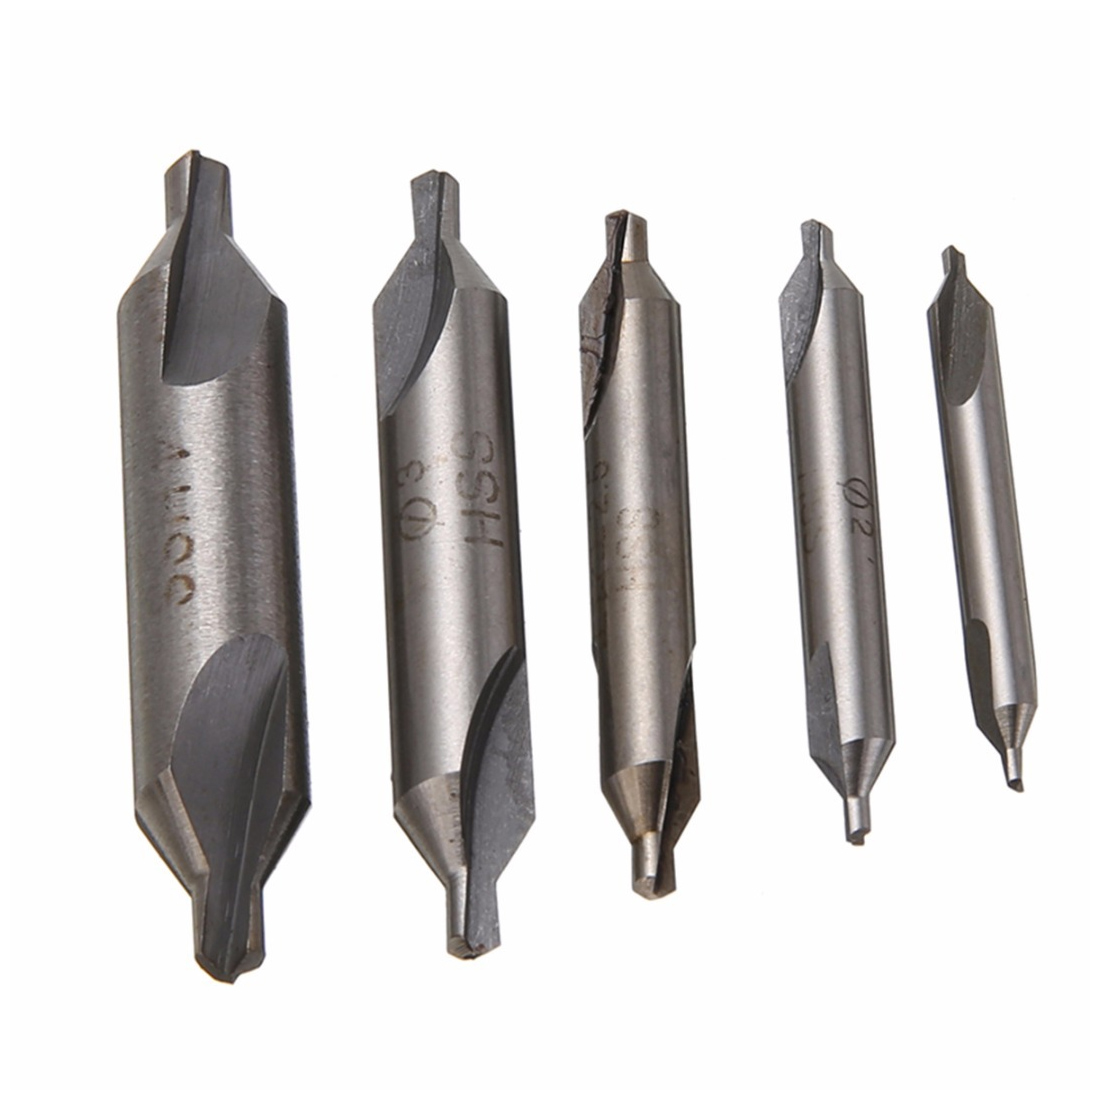 HSS Center Drill Bits Set Precision Combined Countersinks Kit 60 Degree Angle 1/2/3/8mm For Lathe